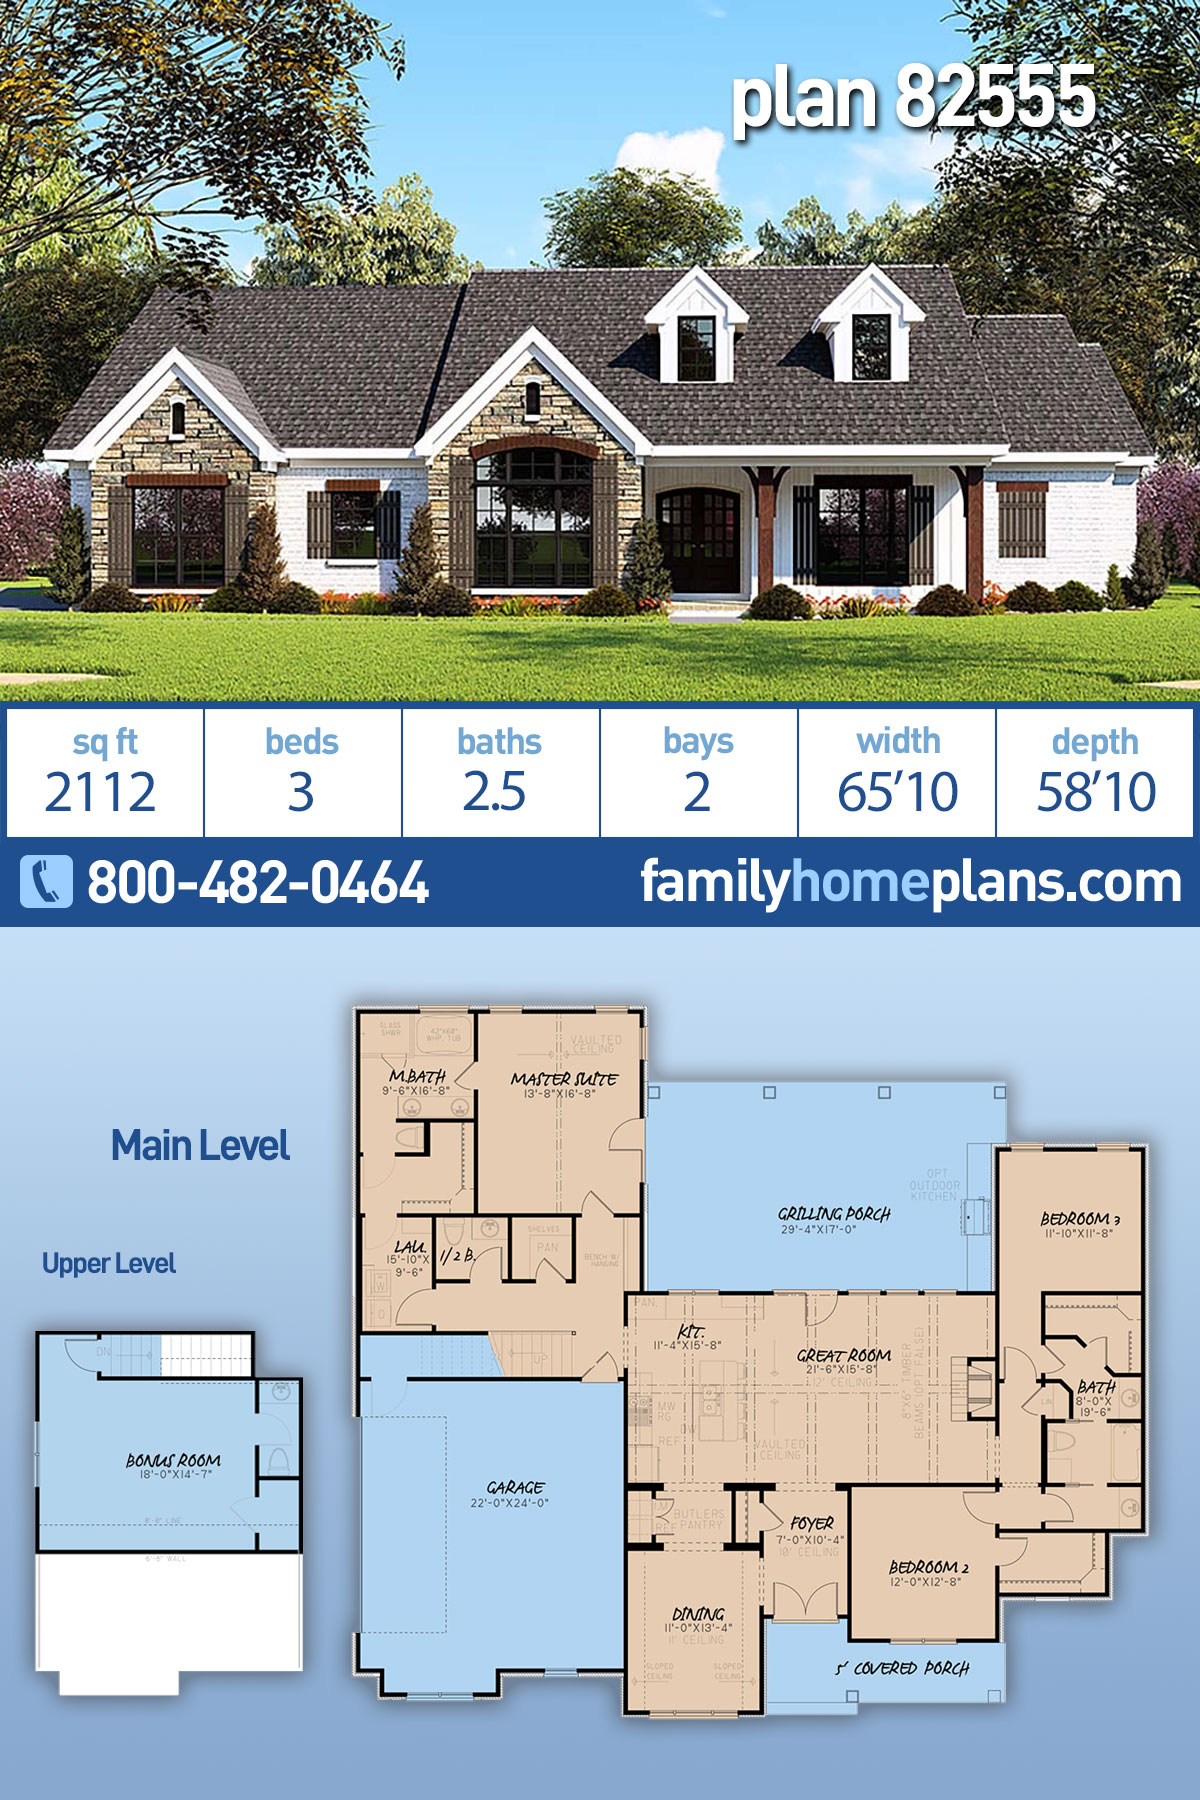 Farmhouse, One-Story, Ranch, Traditional House Plan 82555 with 3 Beds, 3 Baths, 2 Car Garage